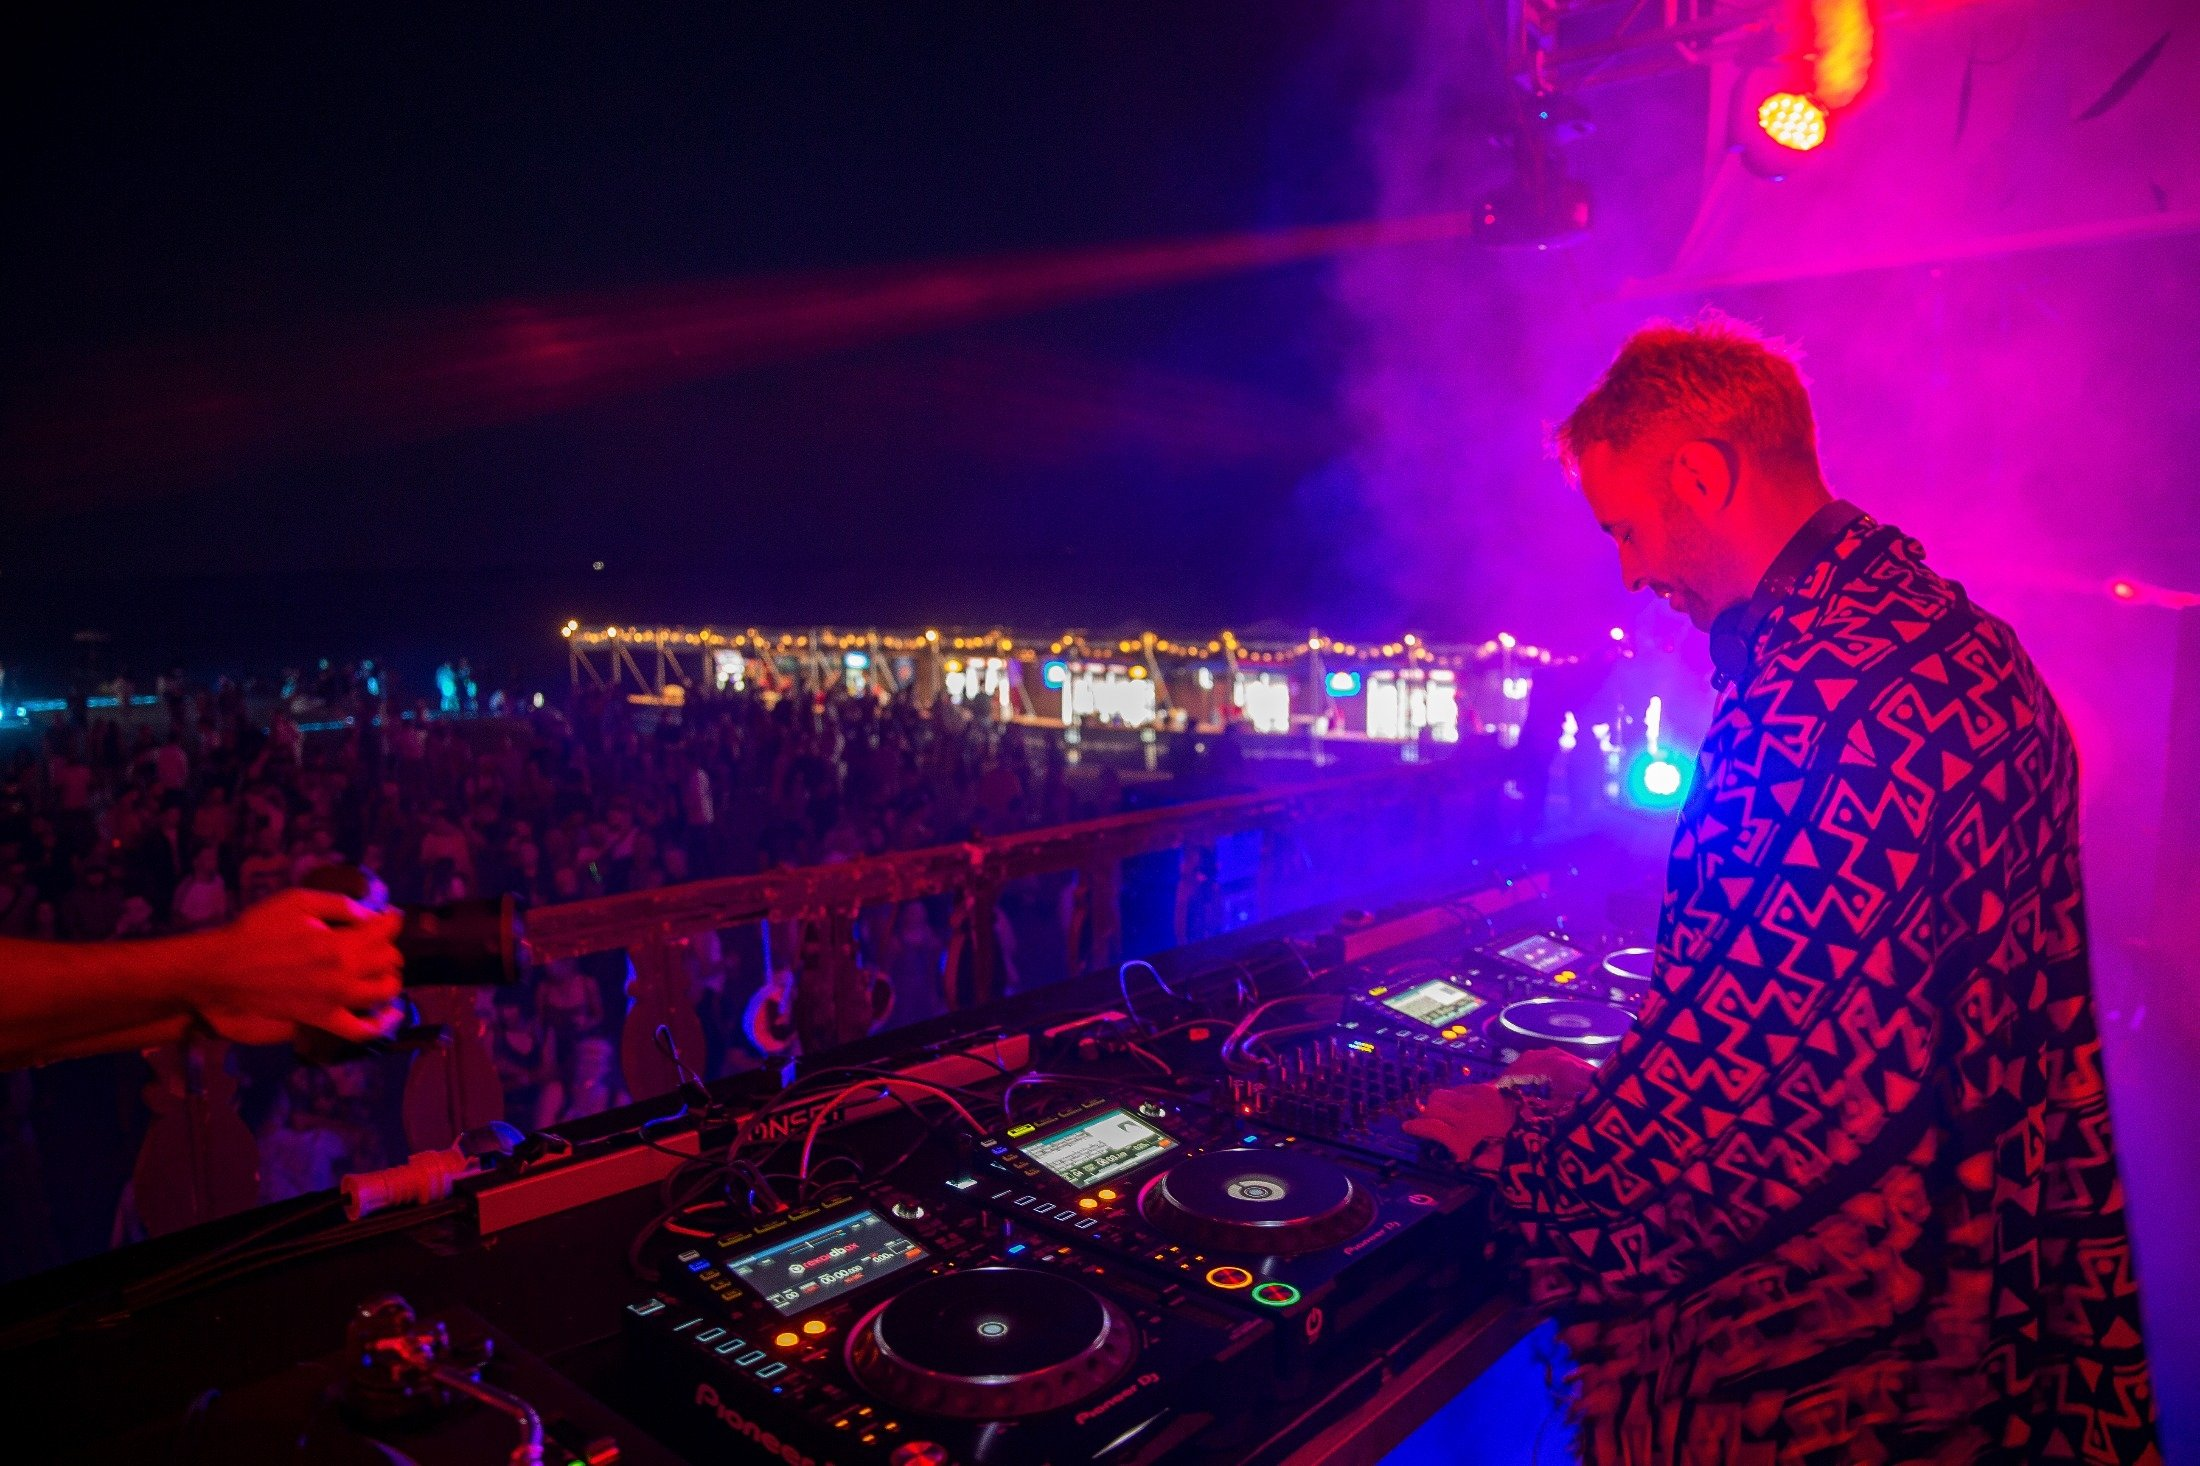 Gentian Riza local DJ performs in front of thousands of international fans at Unum Albania's open-air music festival in Shengjin, Albania, June 4, 2021. (AP Photo)